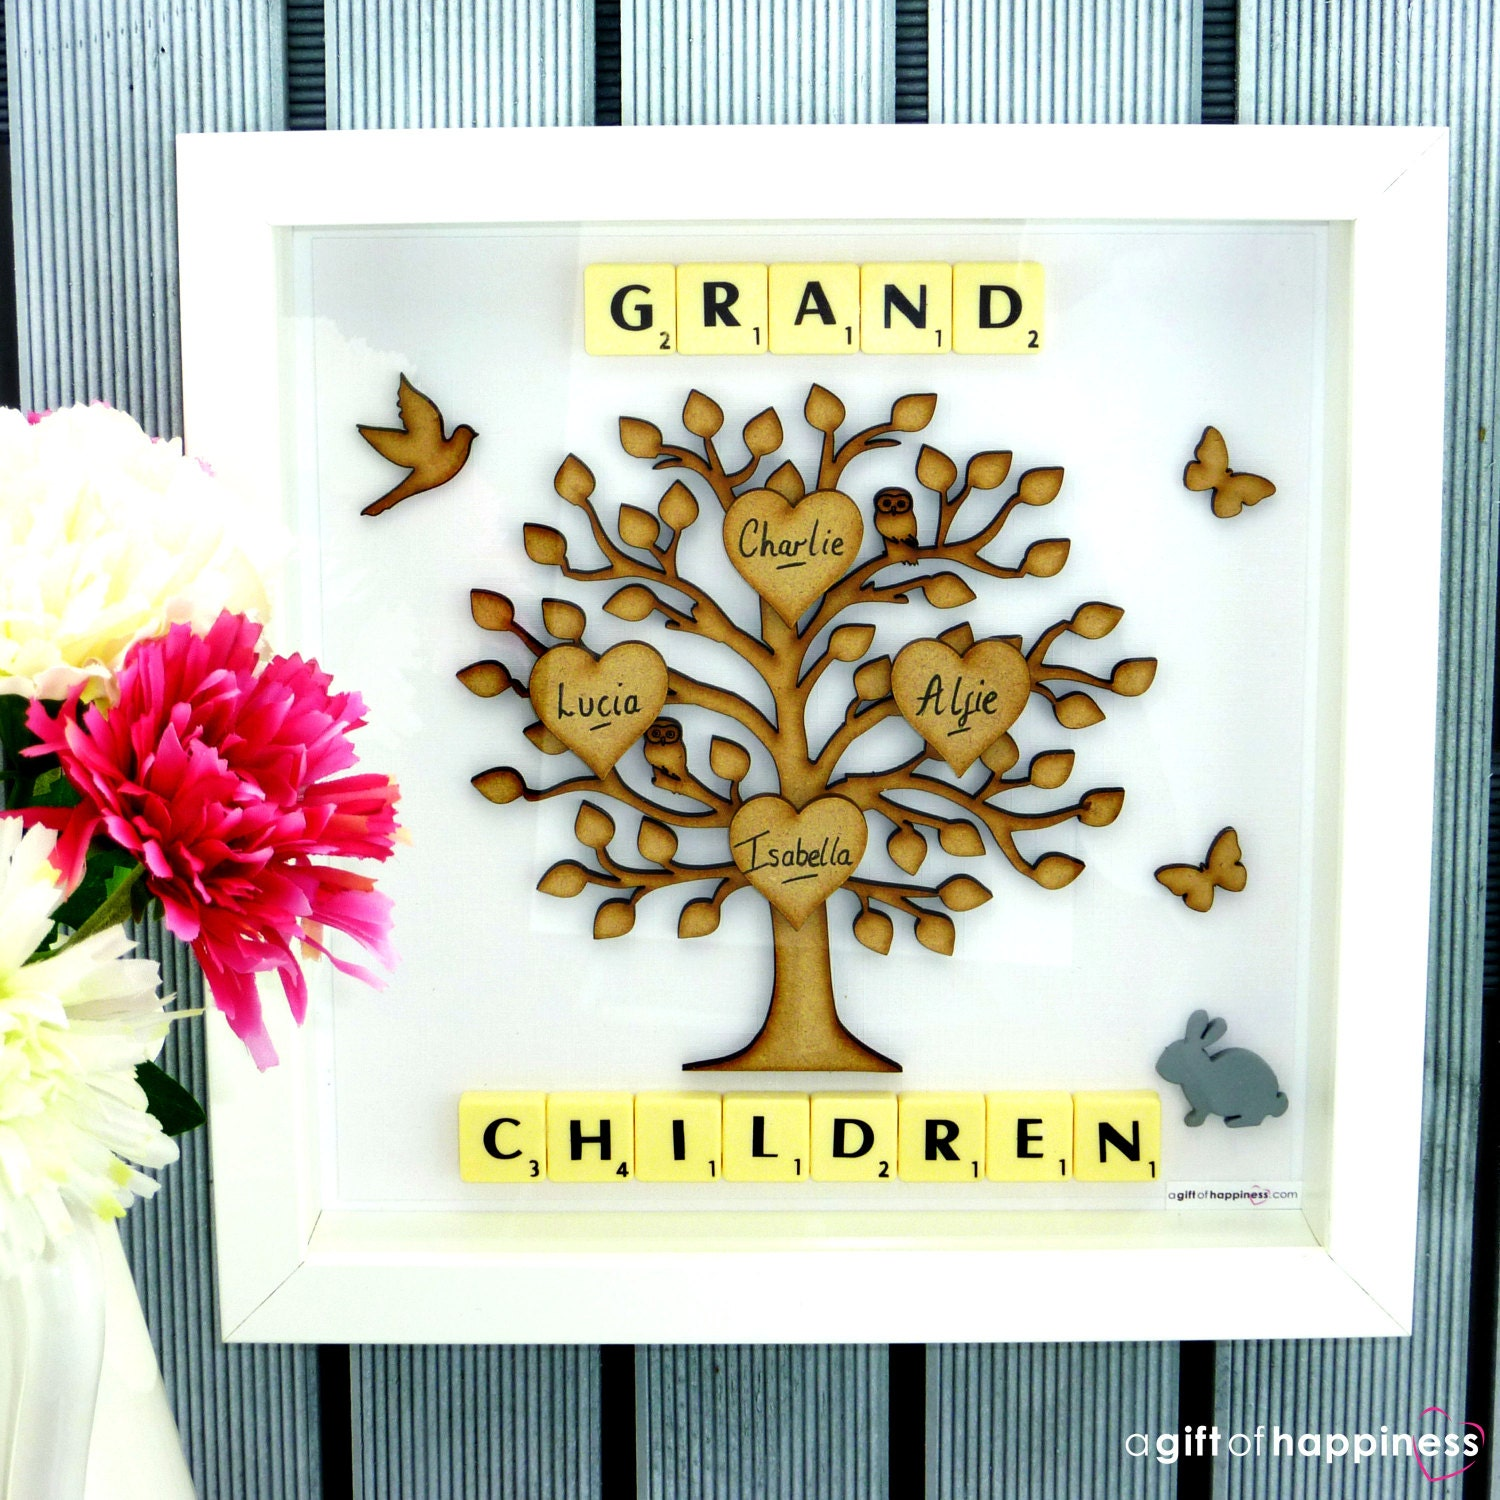 how to translate get promoted to grand parents in french